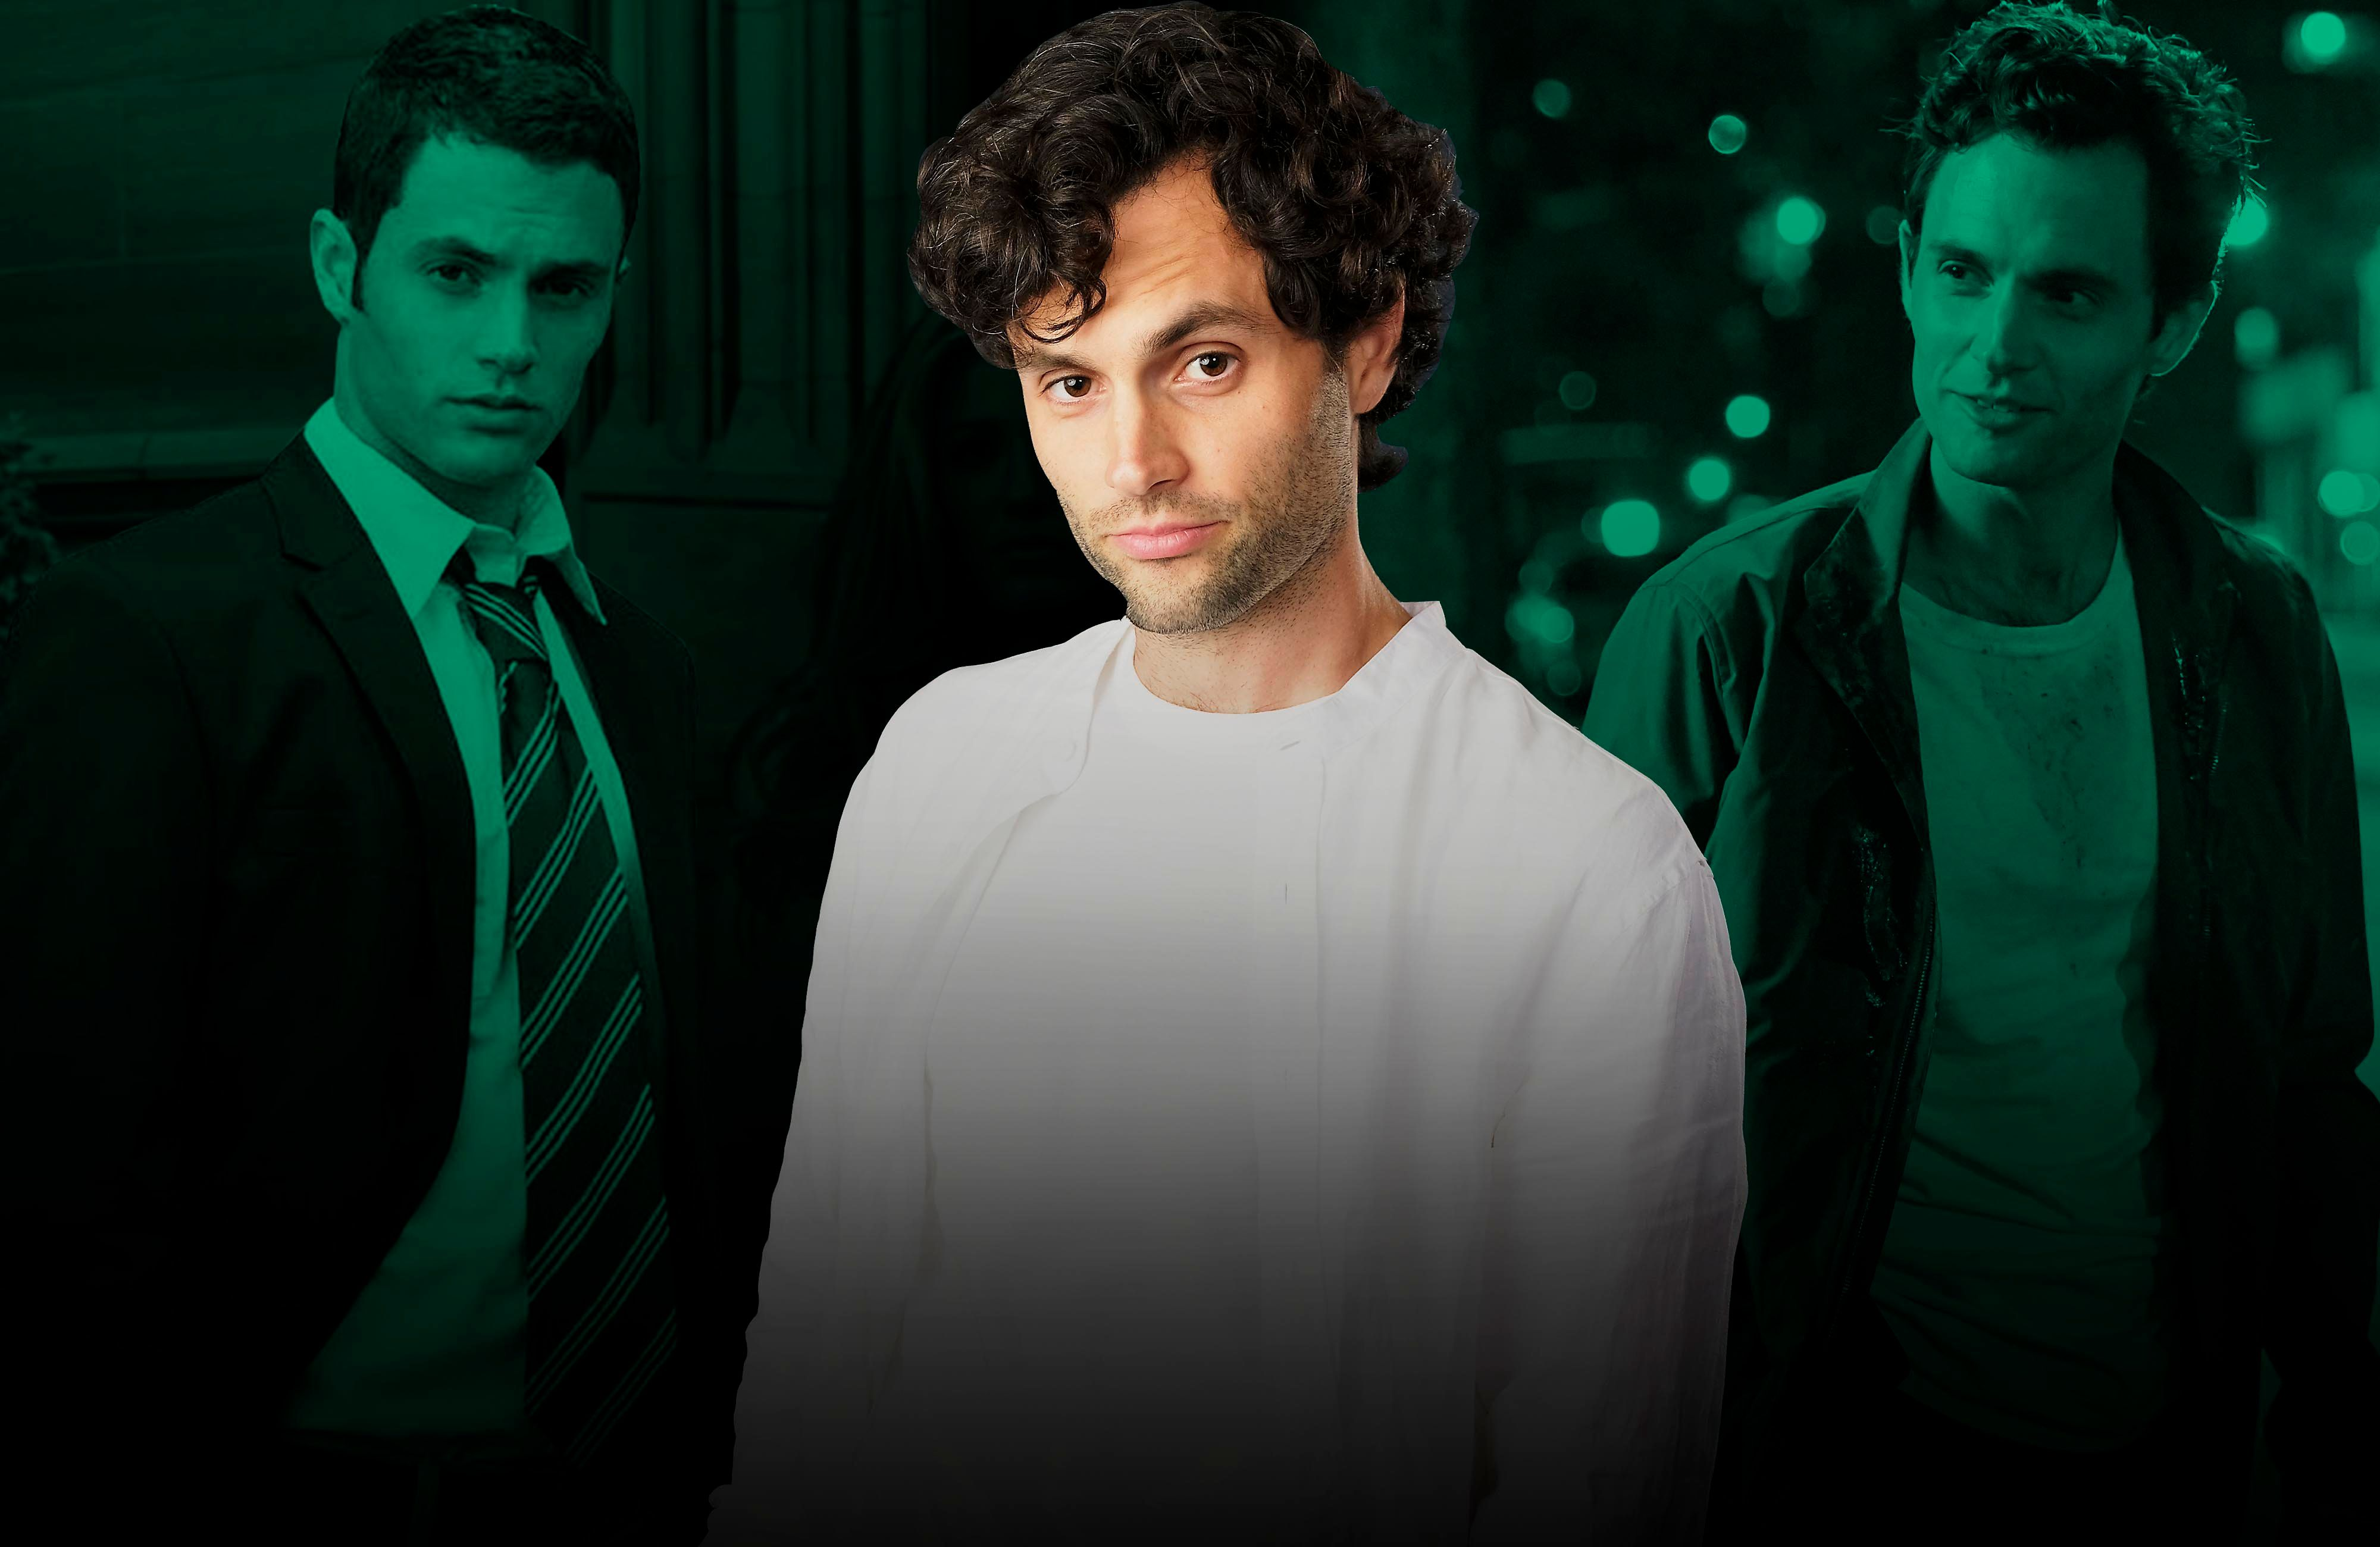 Penn Badgley Gets Meta About His Return To TV As A Very Charming